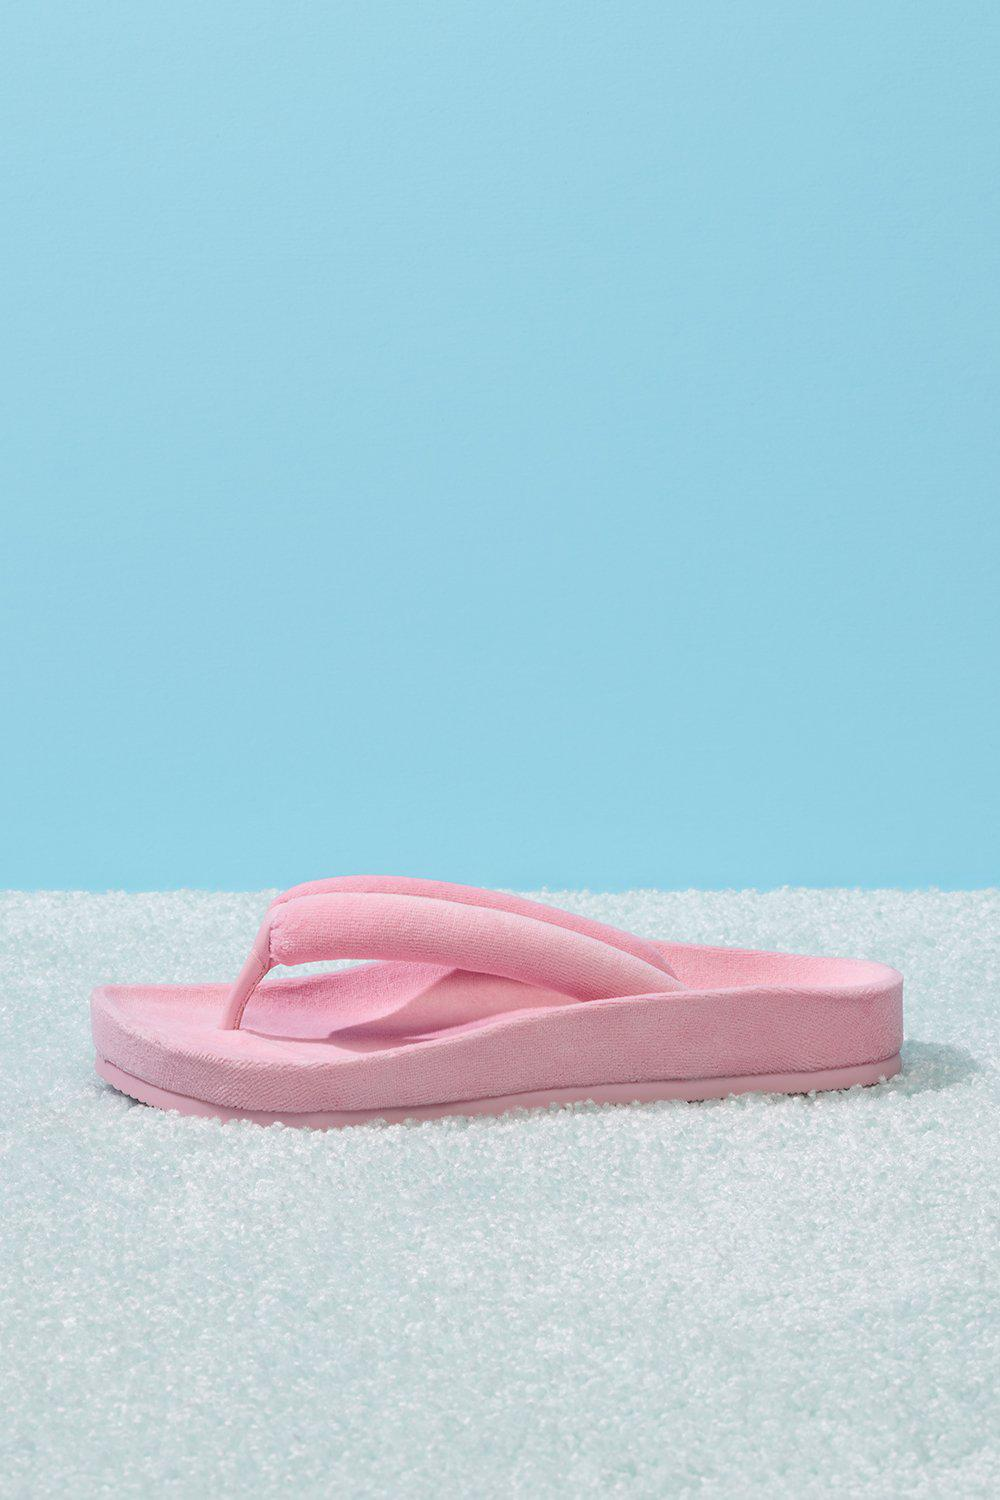 Puffer Padded Flip Flop - Baby Pink